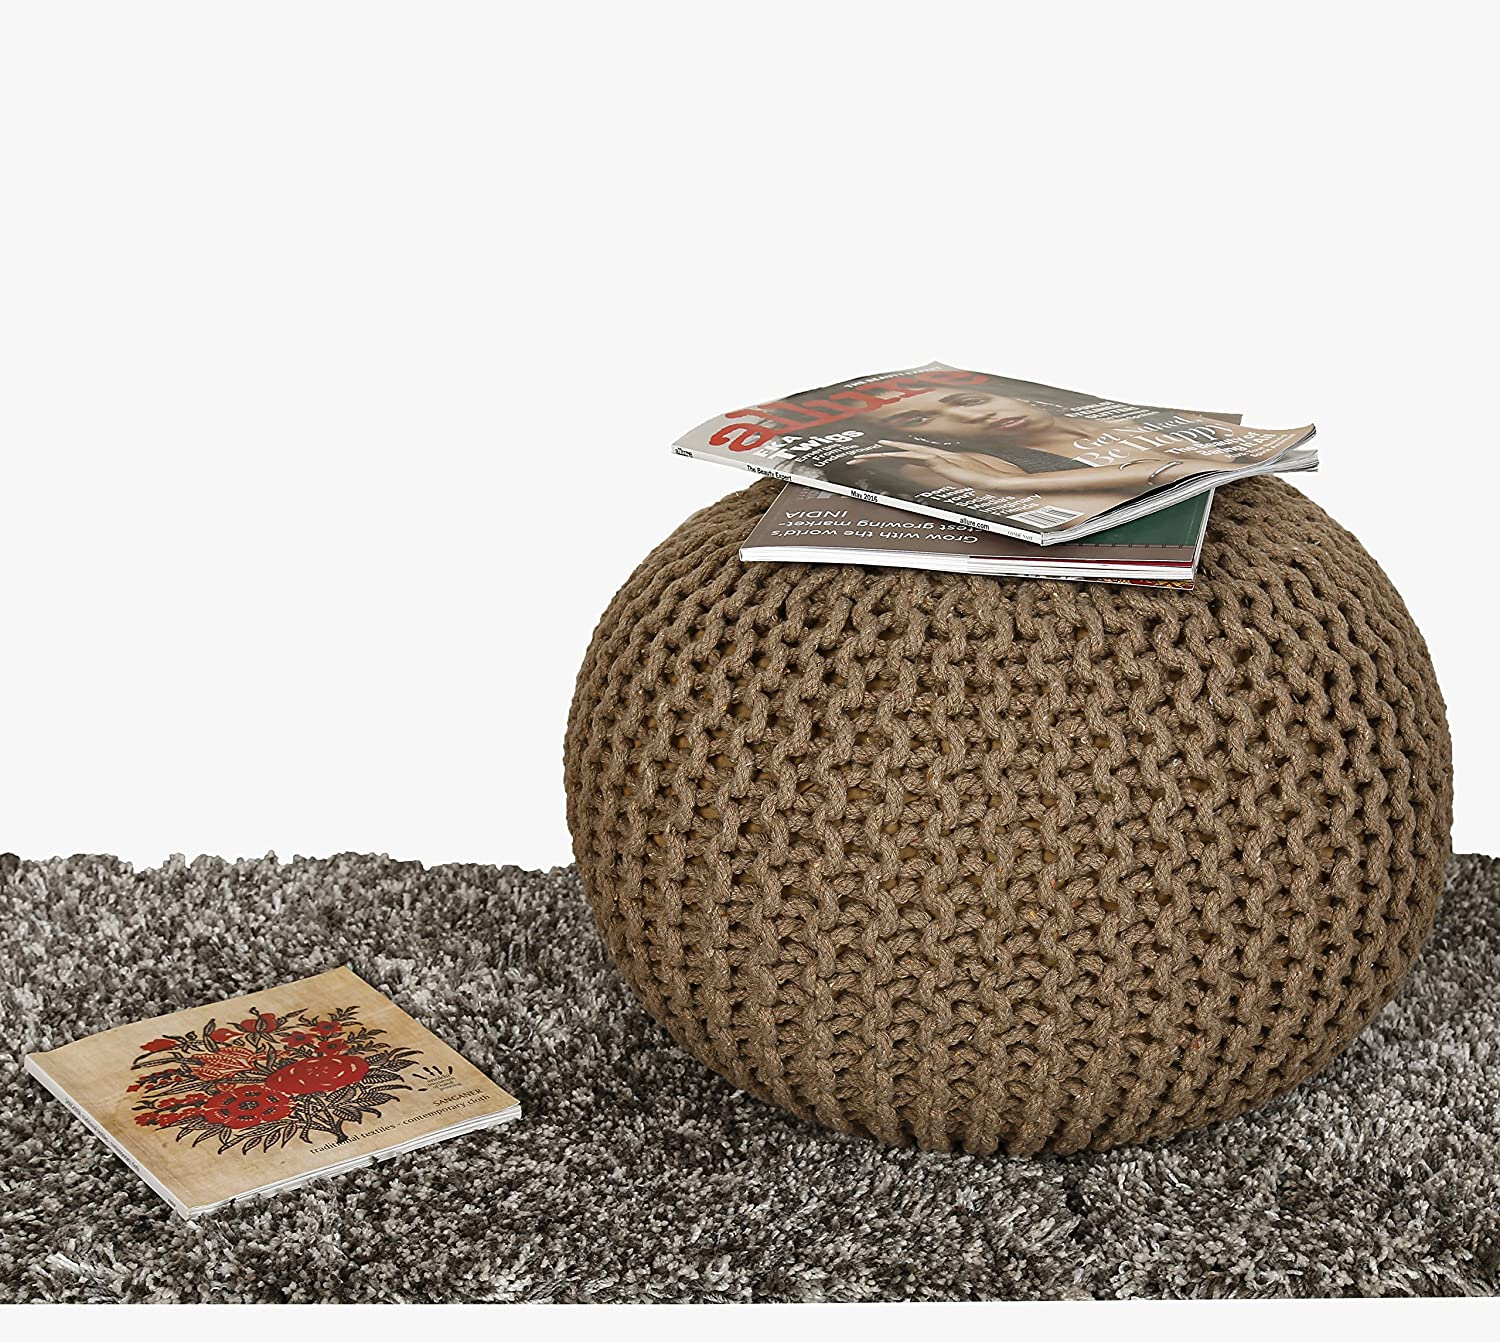 RAJRANG BRINGING RAJASTHAN TO YOU Hand Knit Pure Cotton Pouf Black Braid Cord Stitched Round Ottoman Foot Stool Home Decorative Seat for Guests 19 x 13 Inch